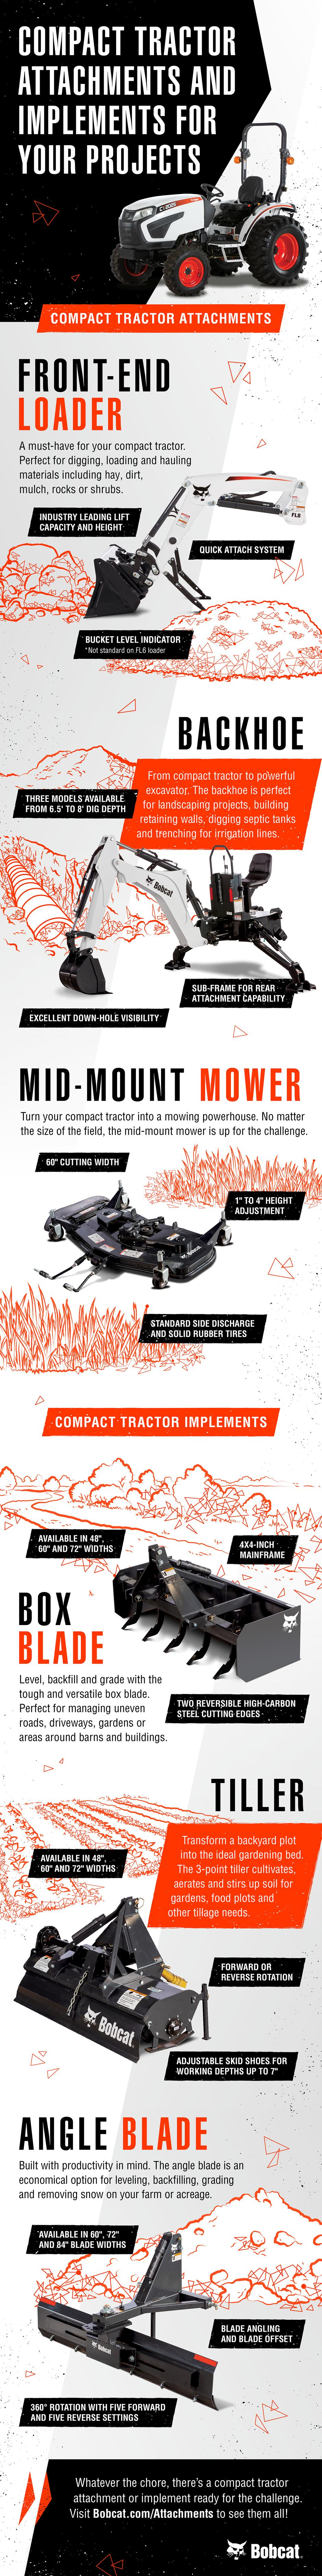 Infographic Featuring Bobcat Compact Tractor Attachments and Implements